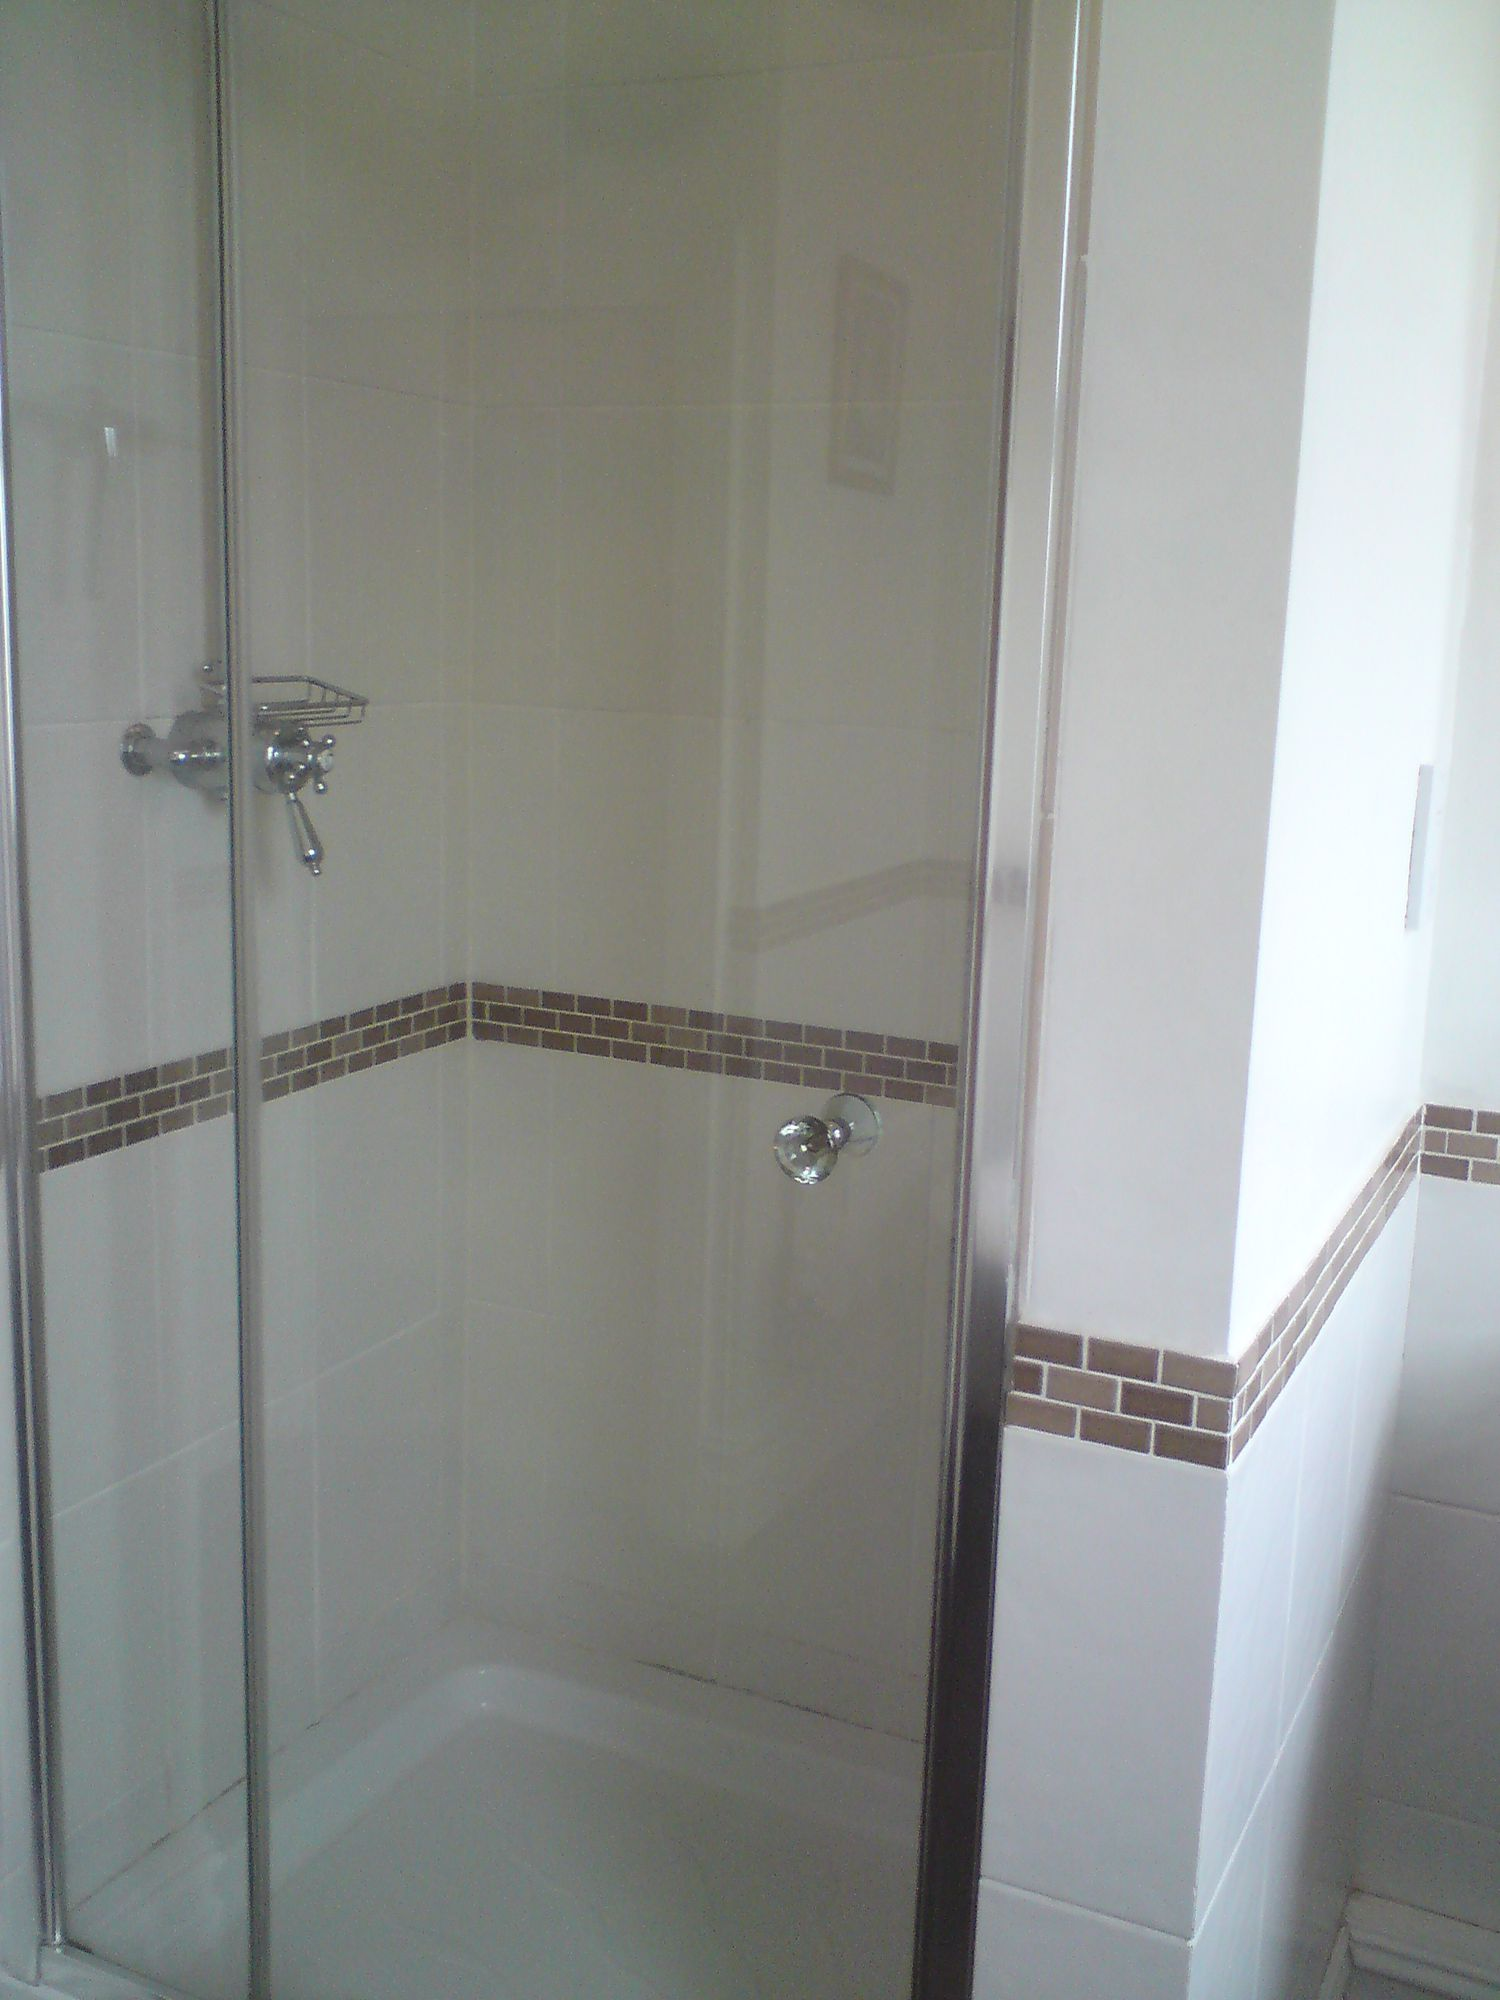 The old enclosed shower area with a glass door on a built in cubicle.